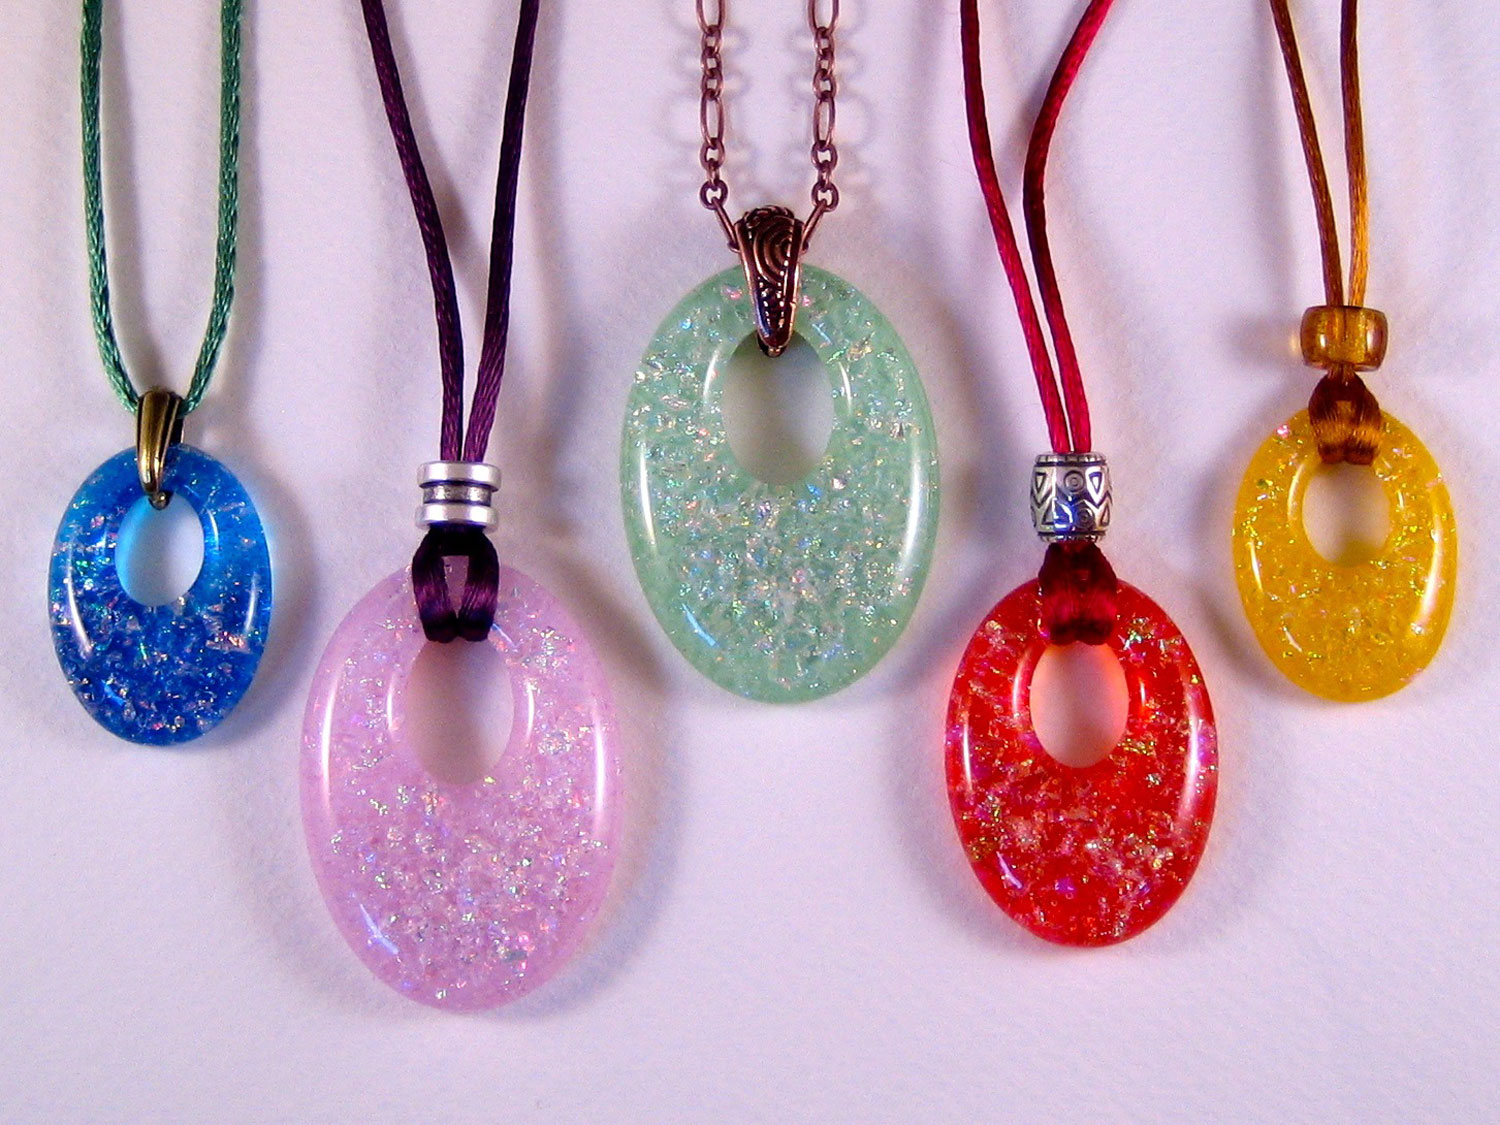 Bulleye Lamp Offset Oval Pendants Mold | Jewelry Jewelry